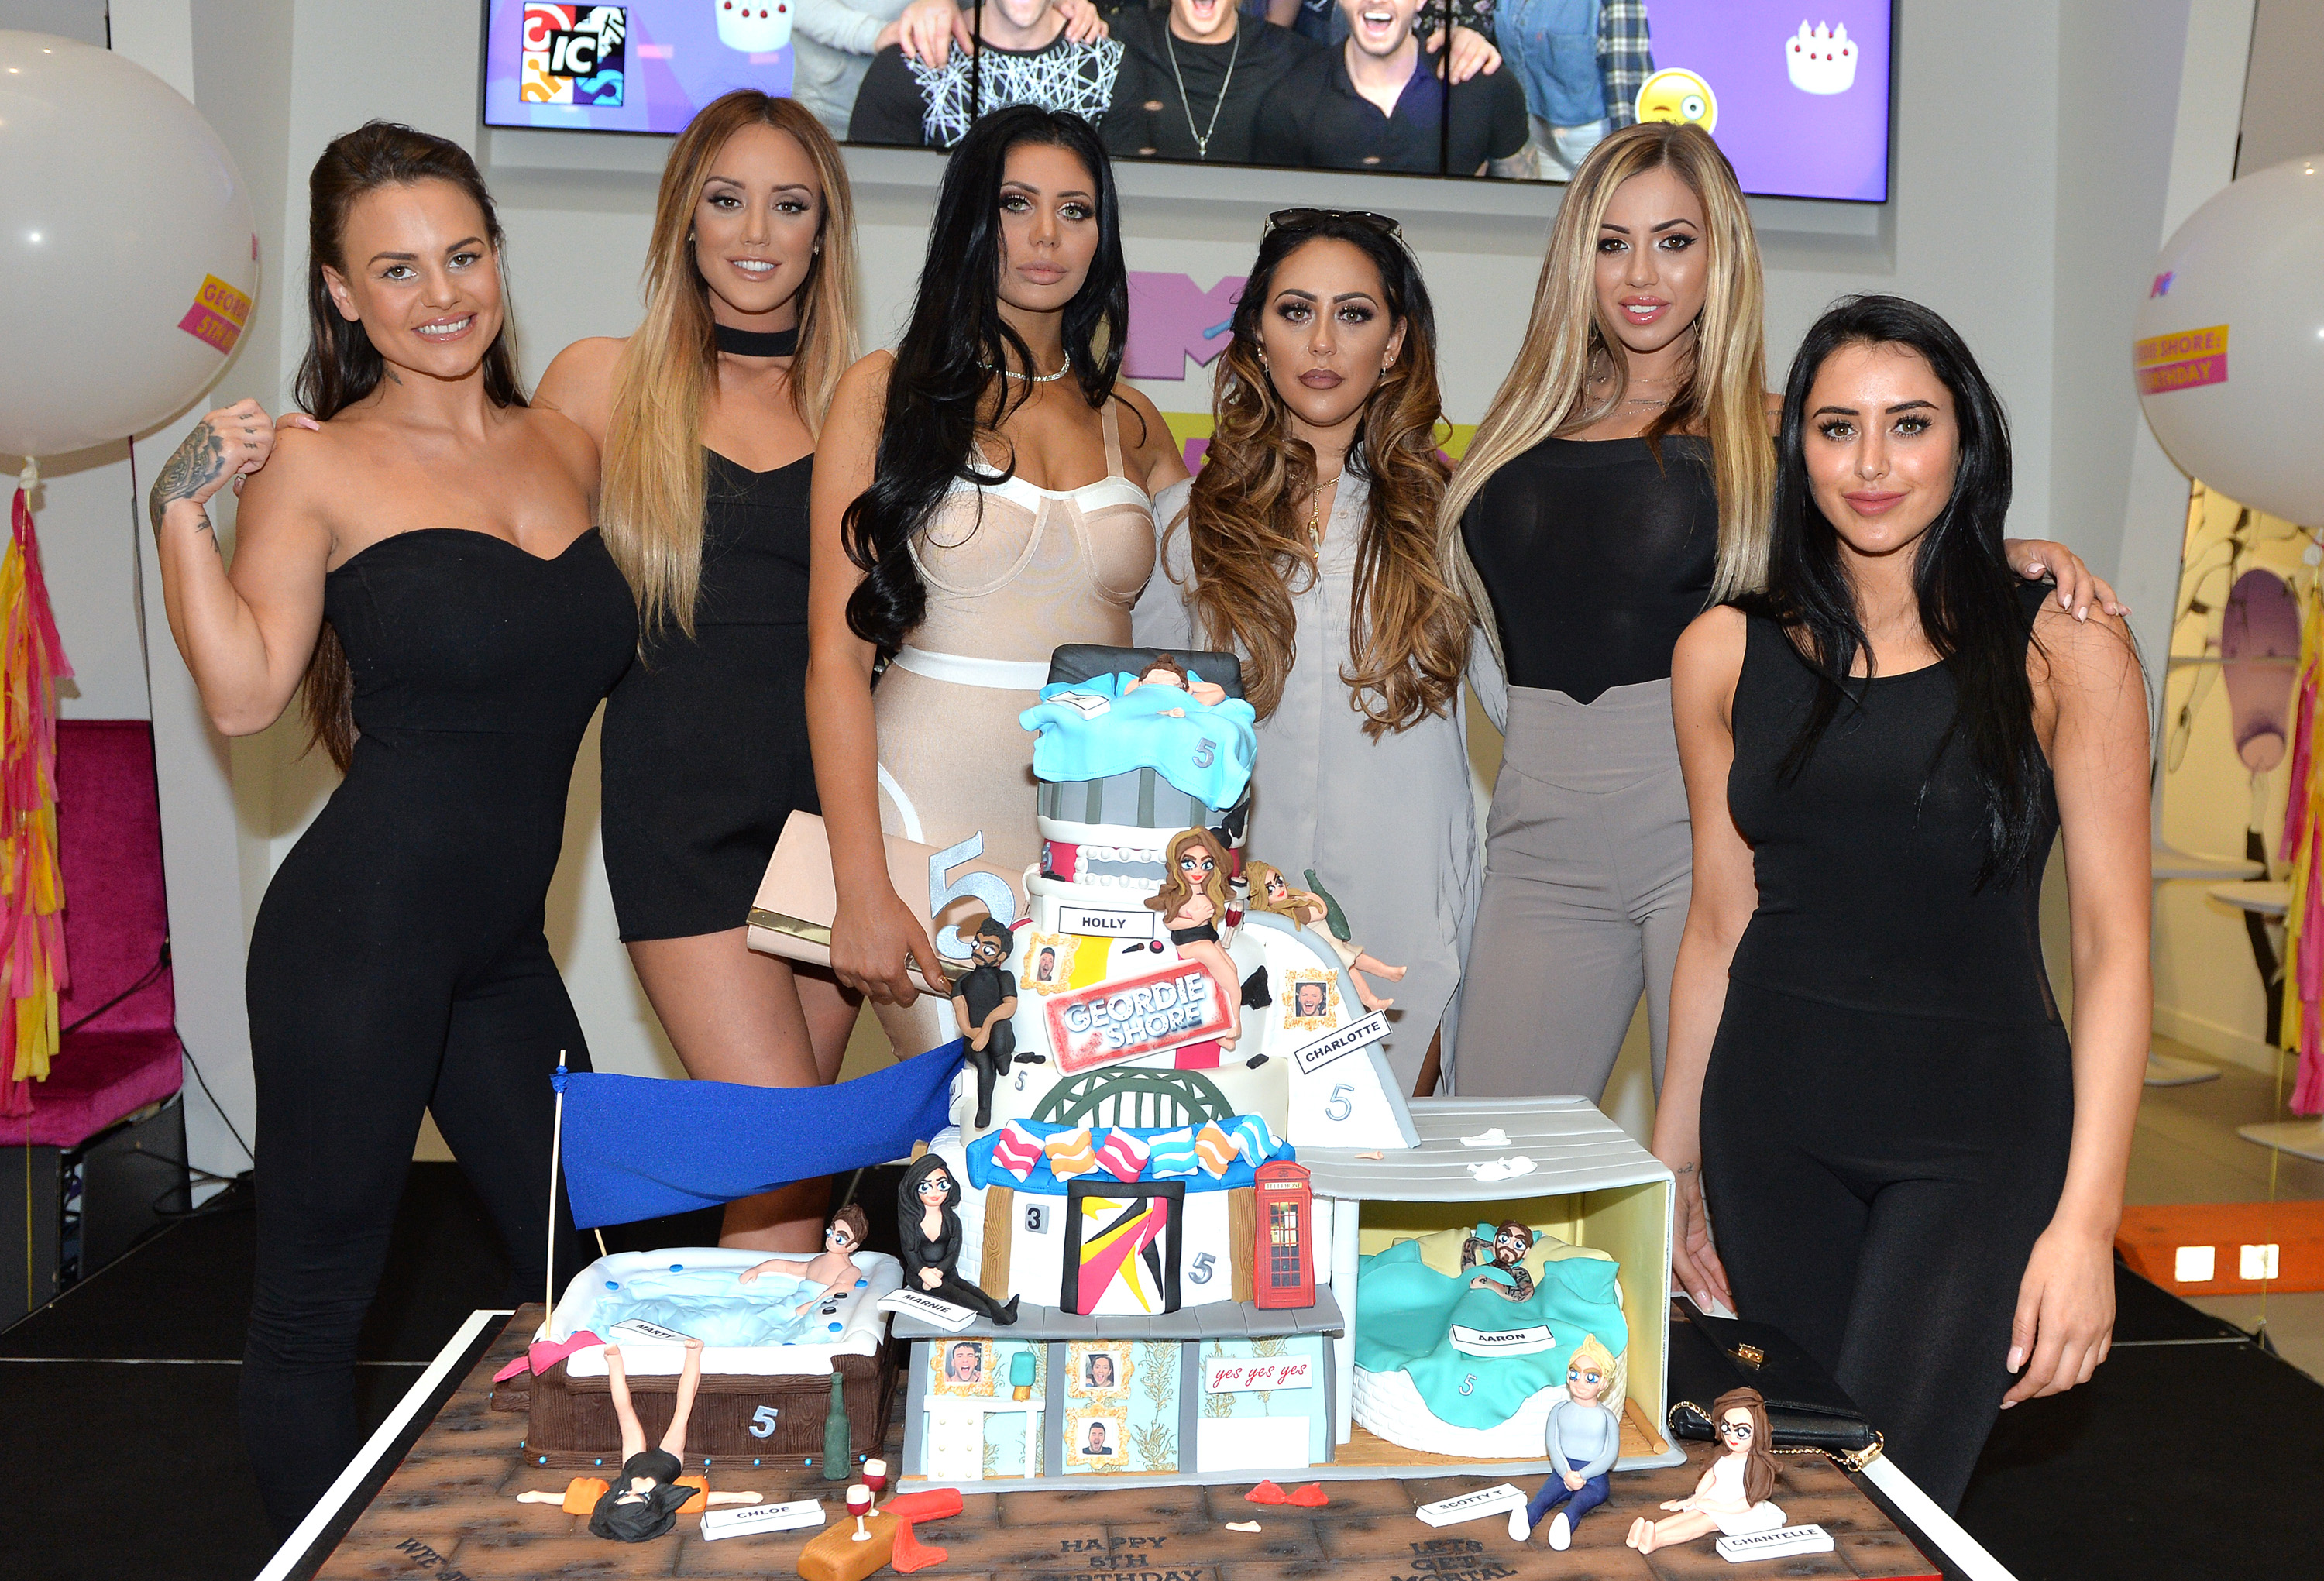 LONDON, ENGLAND - MAY 24: Charlotte Crosby, Holly Hagan, Chloe Etherington, Chantelle Connelly, Marnie Simpson and Sophie Kasaei of Geordie Shore celebrate their fifth birthday at MTV London on May 24, 2016 in London, England. (Photo by Anthony Harvey/Getty Images) *** Local Caption *** Charlotte Crosby; Holly Hagan; Chloe Etherington; Chantelle Connelly; Marnie Simpson; Sophie Kasaei